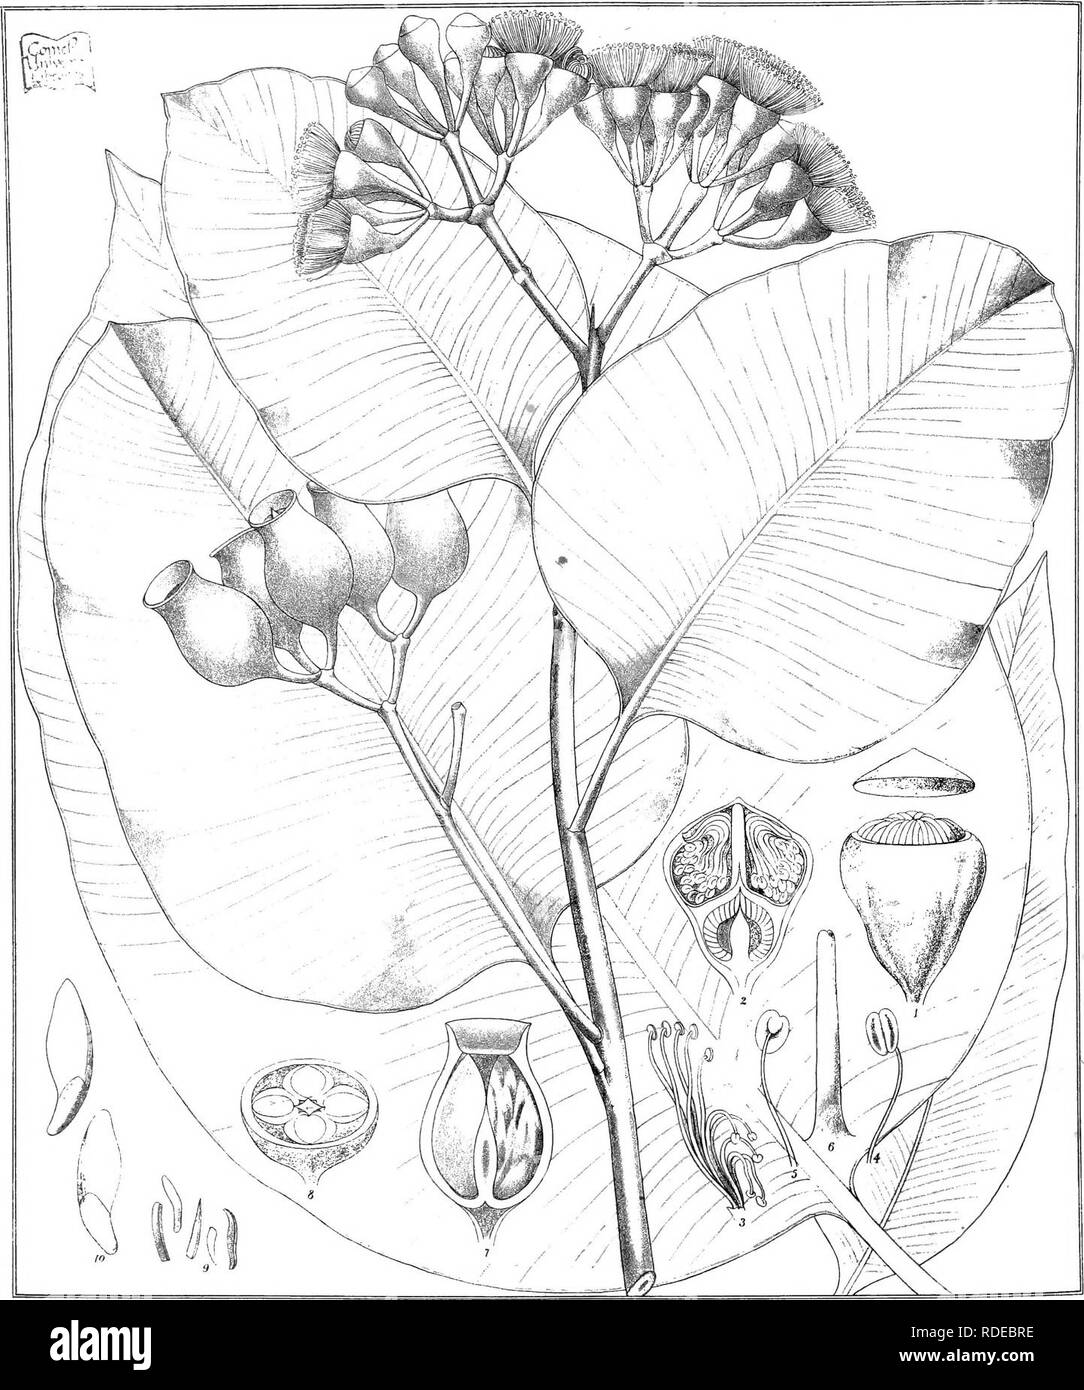 """. Eucalyptographia. A descriptive atlas of the eucalypts of Australia and the adjoining islands;. Eucalyptus; Botany. Todl -ifl C Troeael * C LitK. F. V. M direxiL. Steam Lilho Gov Printing Office Melb lwM